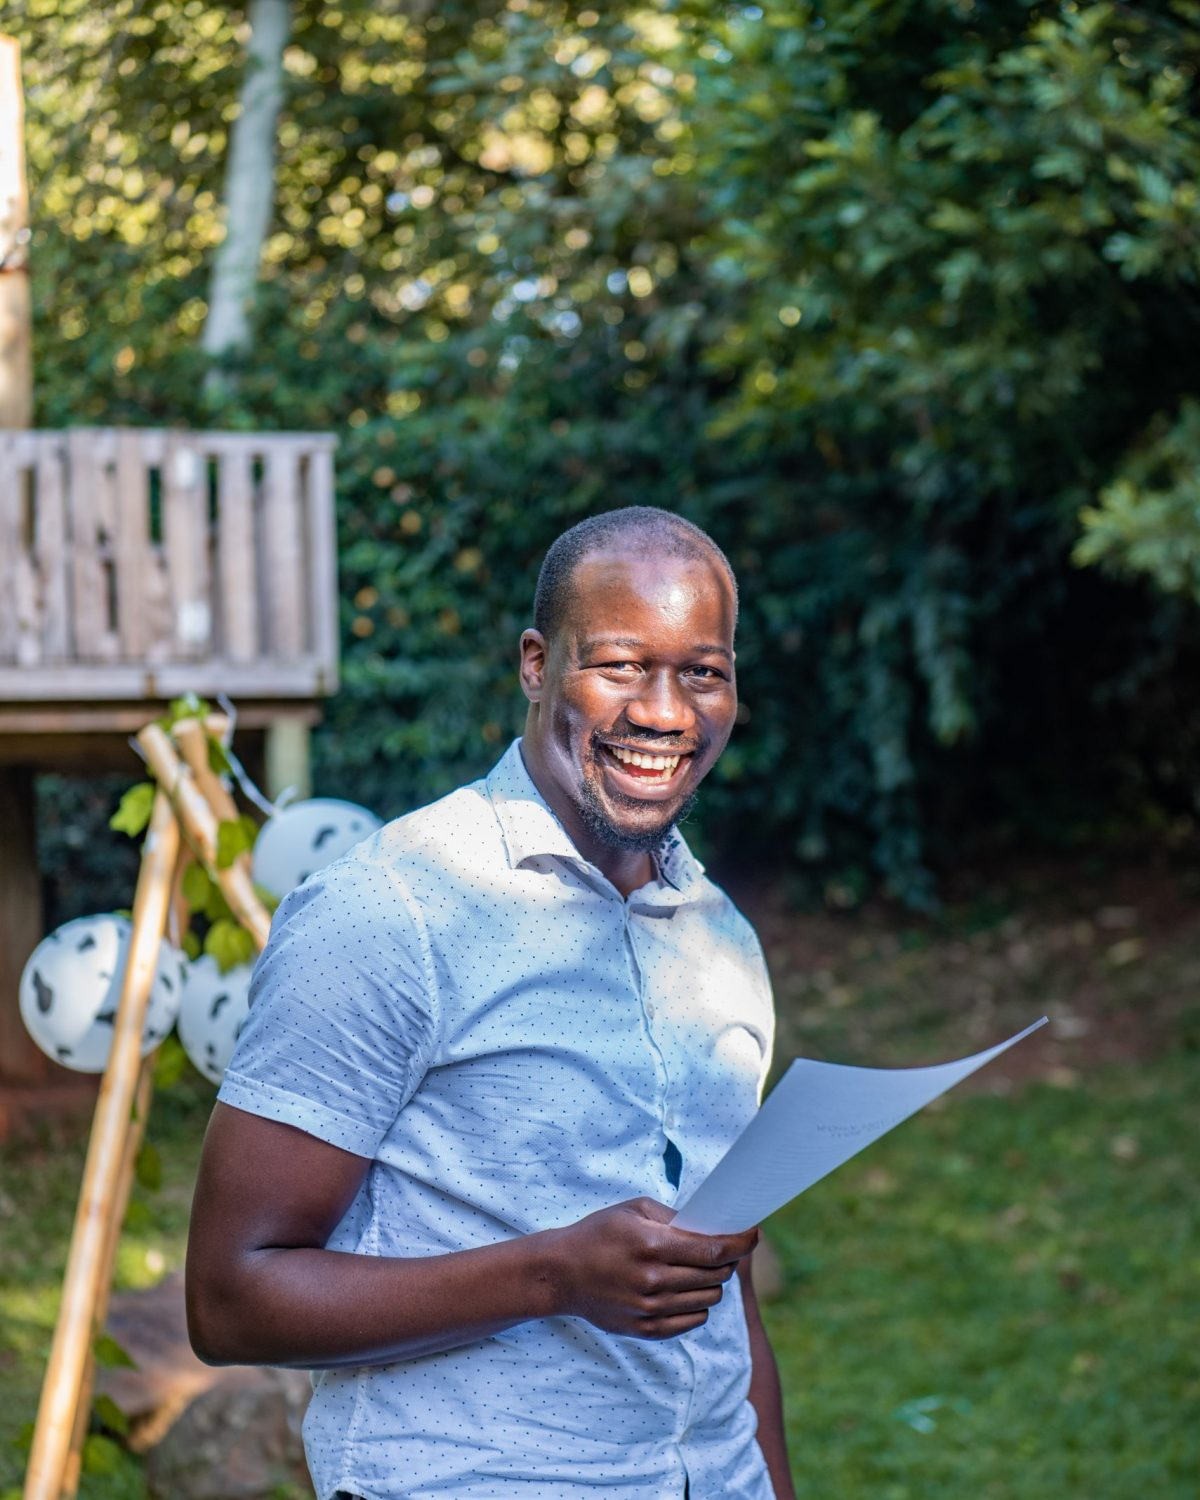 Jonathan Kola smiling outdoors with paper in hand